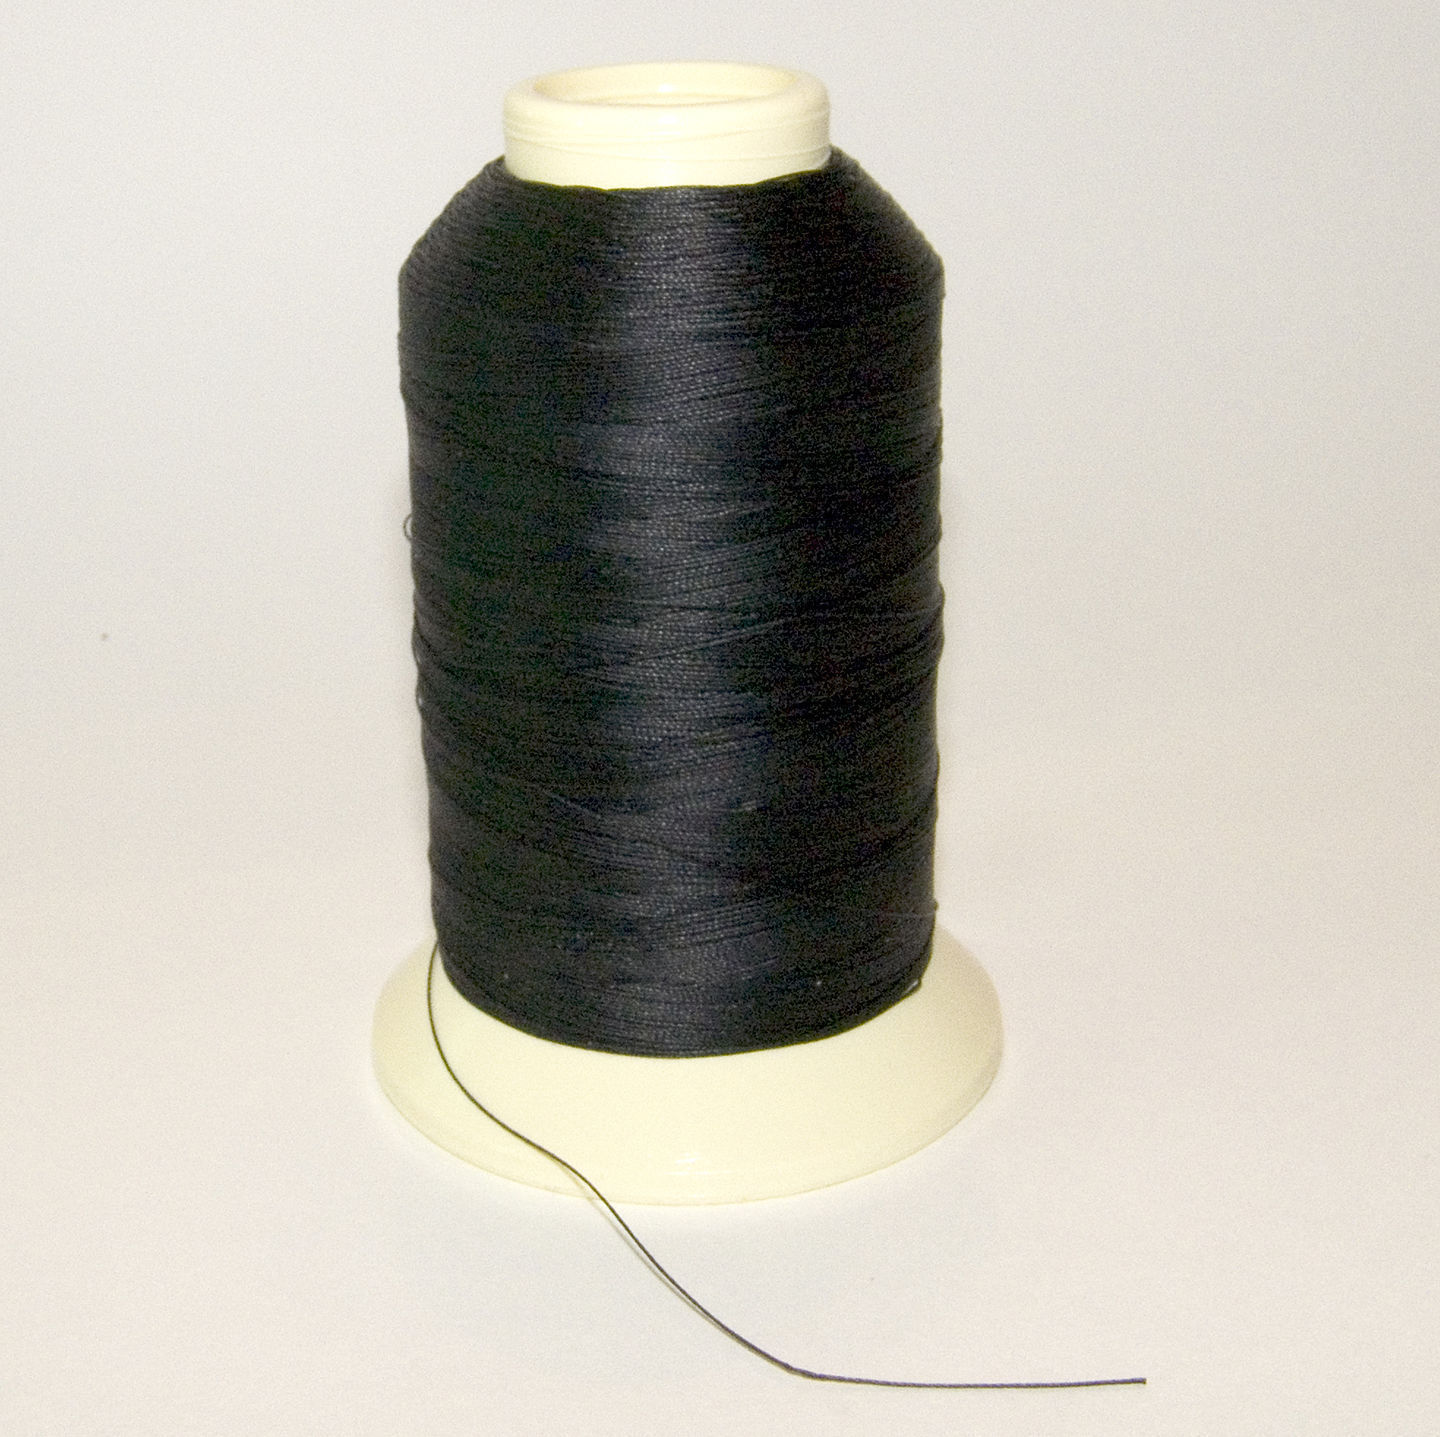 Primary image for Polyester Thread, Bonded, Thread-4 oz. Spool, Black - Size DB-92 T-90